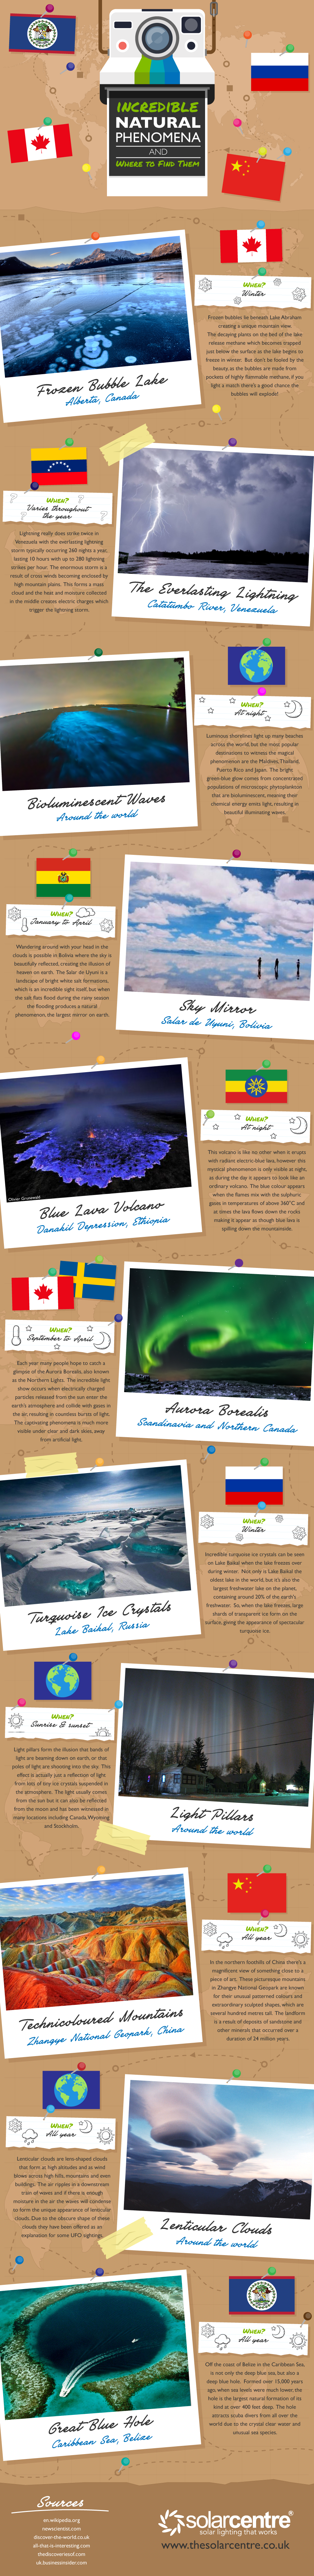 Nature Lovers' Bucket List: Places of Incredible Natural Phenomena - Infographic